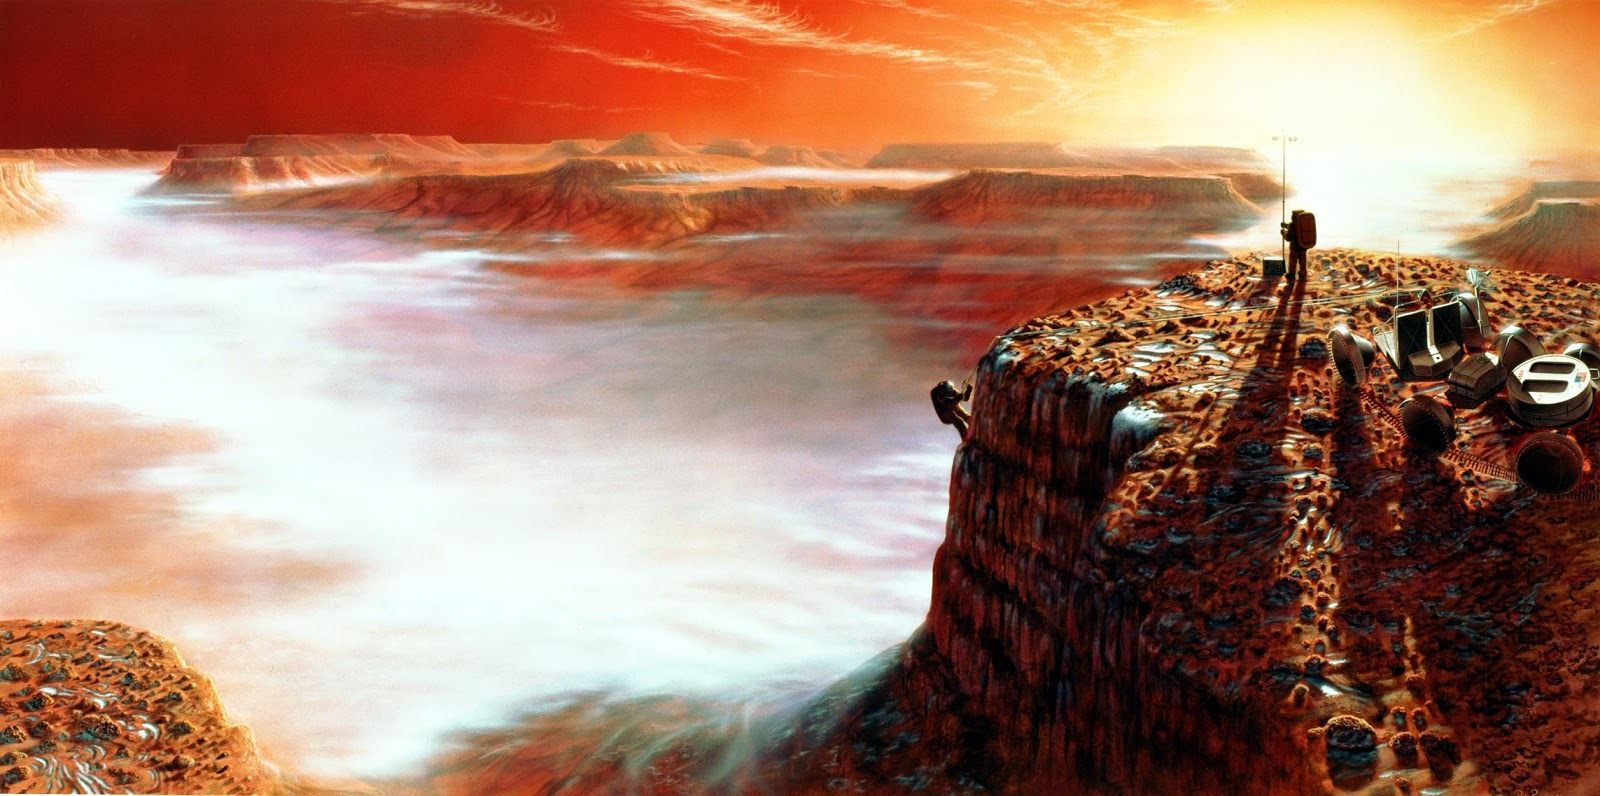 The area depicted is Noctis Labyrinthus in the Valles Marineris system of enormous canyons. The scene is just after sunrise, and on the canyon floor four miles below, early morning clouds can be seen. The frost on the surface will melt very quickly as the Sun climbs higher in the Martian sky. - Image Credit: NASA